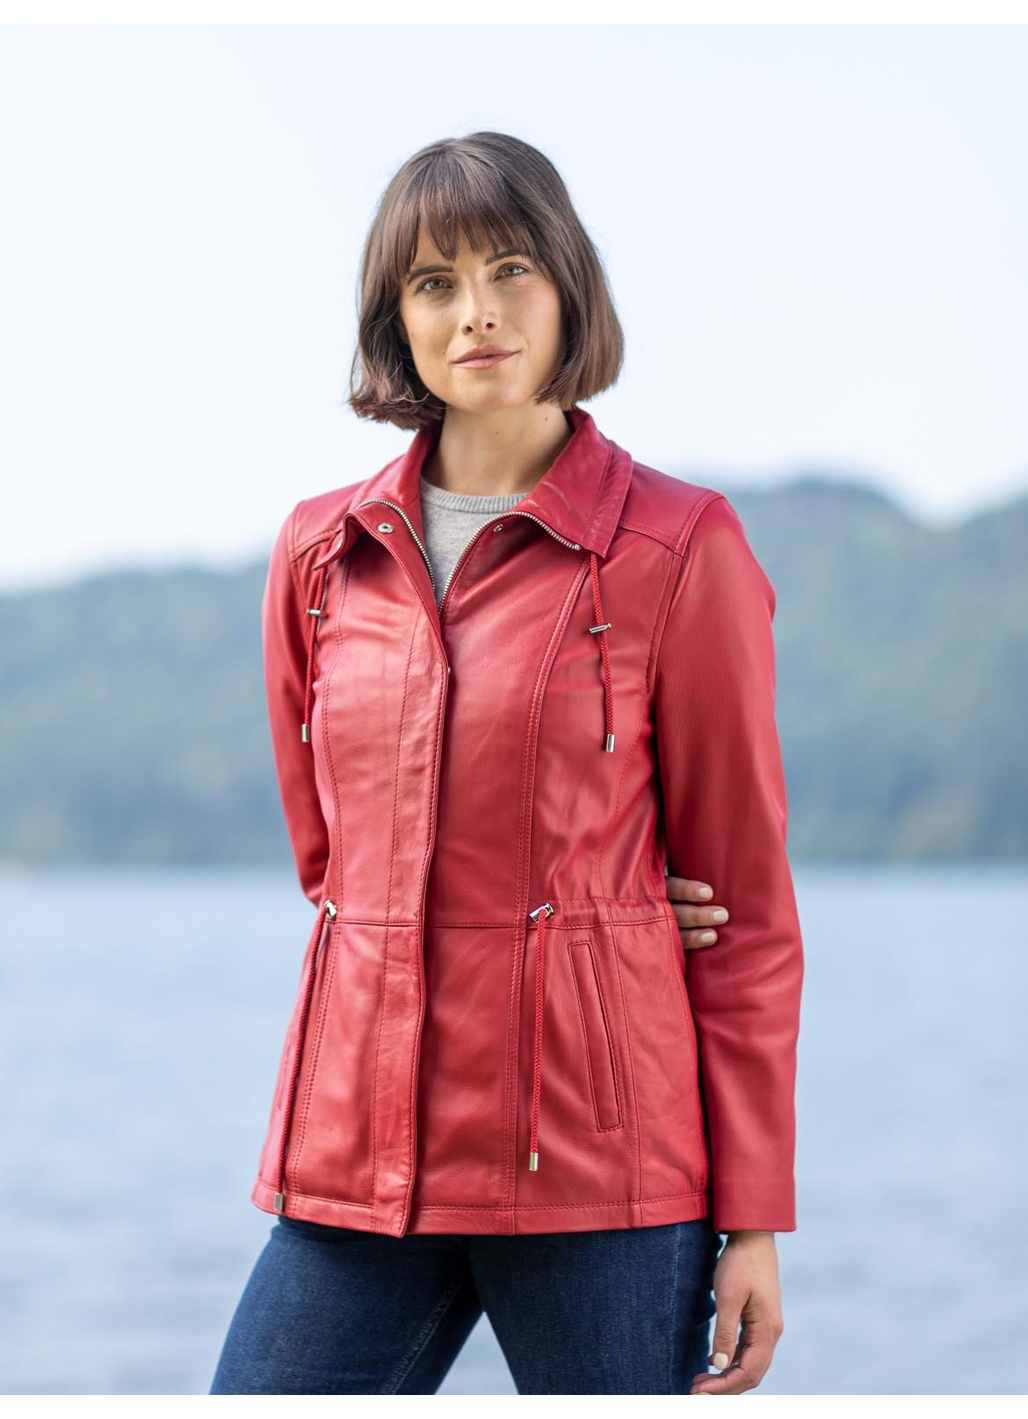 Levens Leather Field Jacket in Red